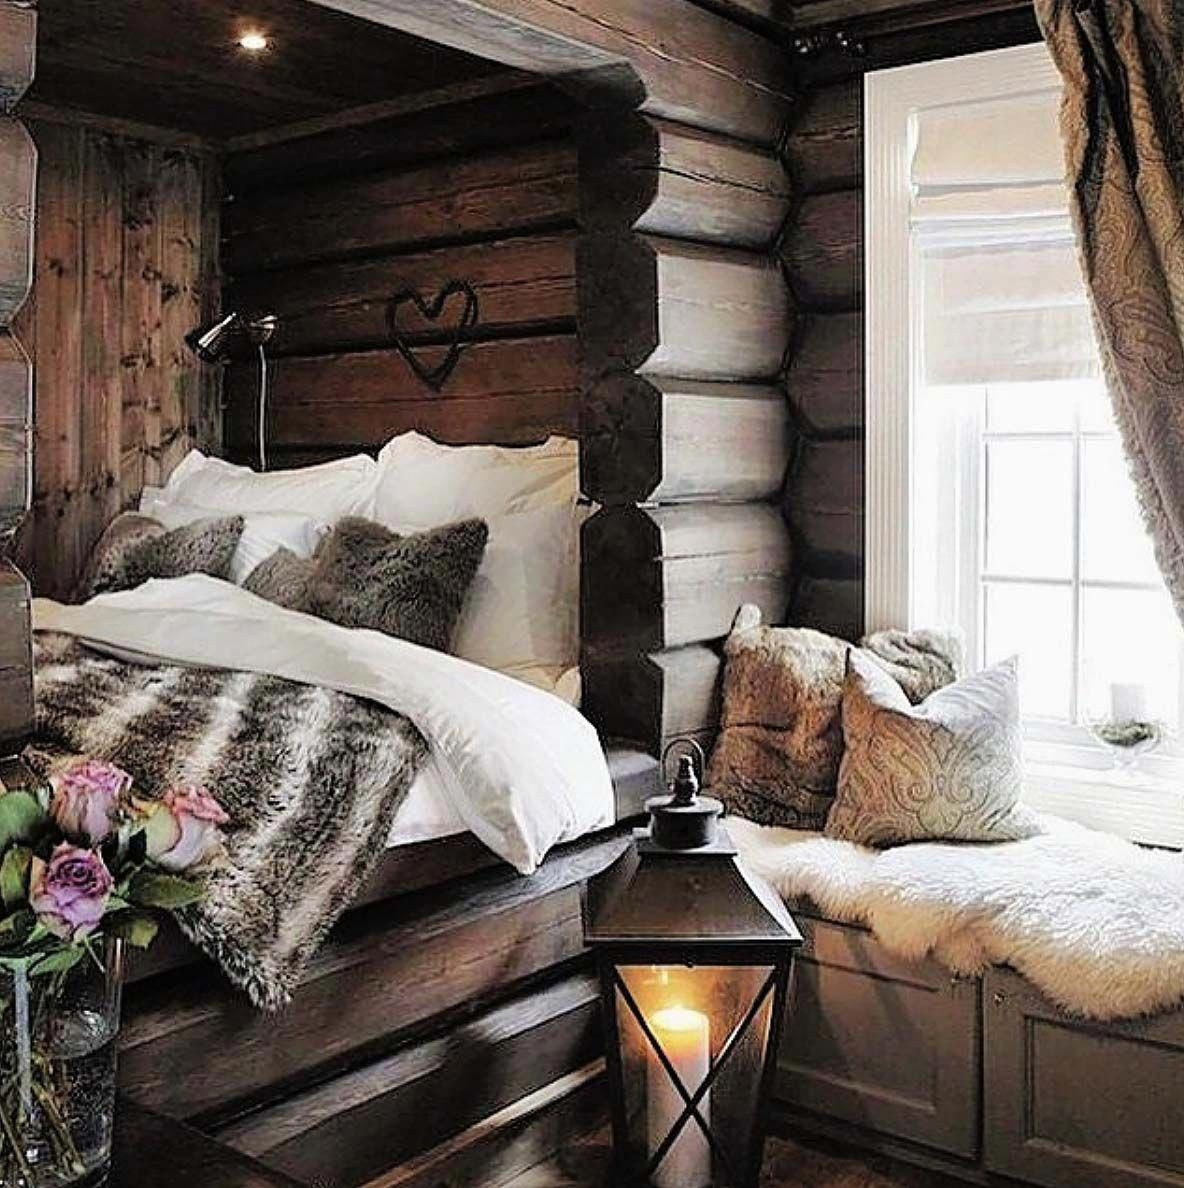 37 Ultracozy bedroom decorating ideas for winter warmth